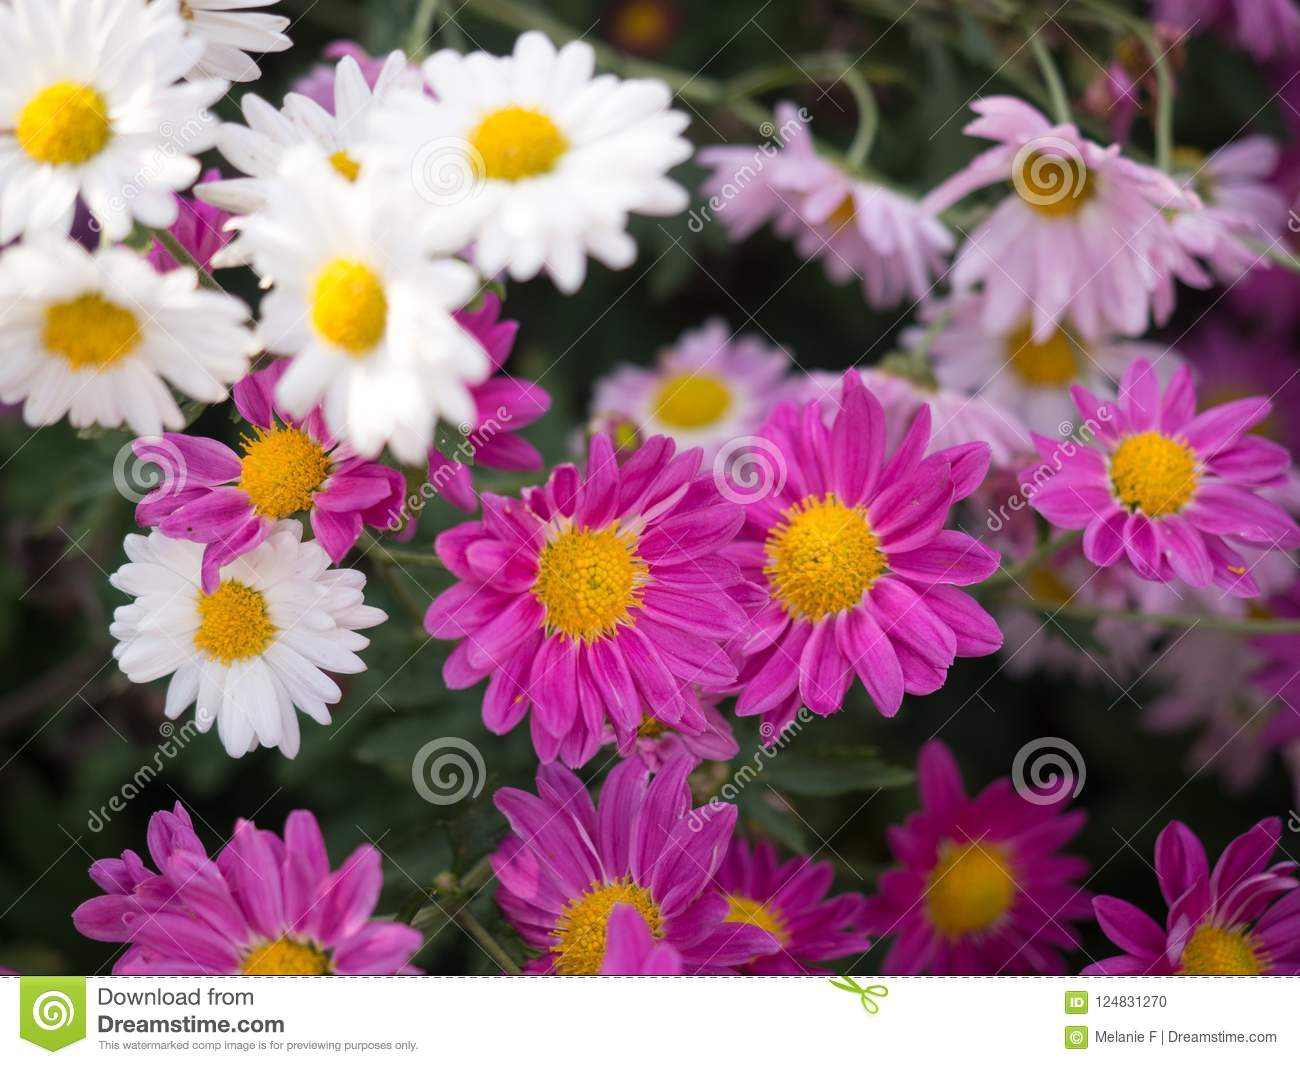 Bright Pink And White Mums Flowers Blooming In The Garden Stock